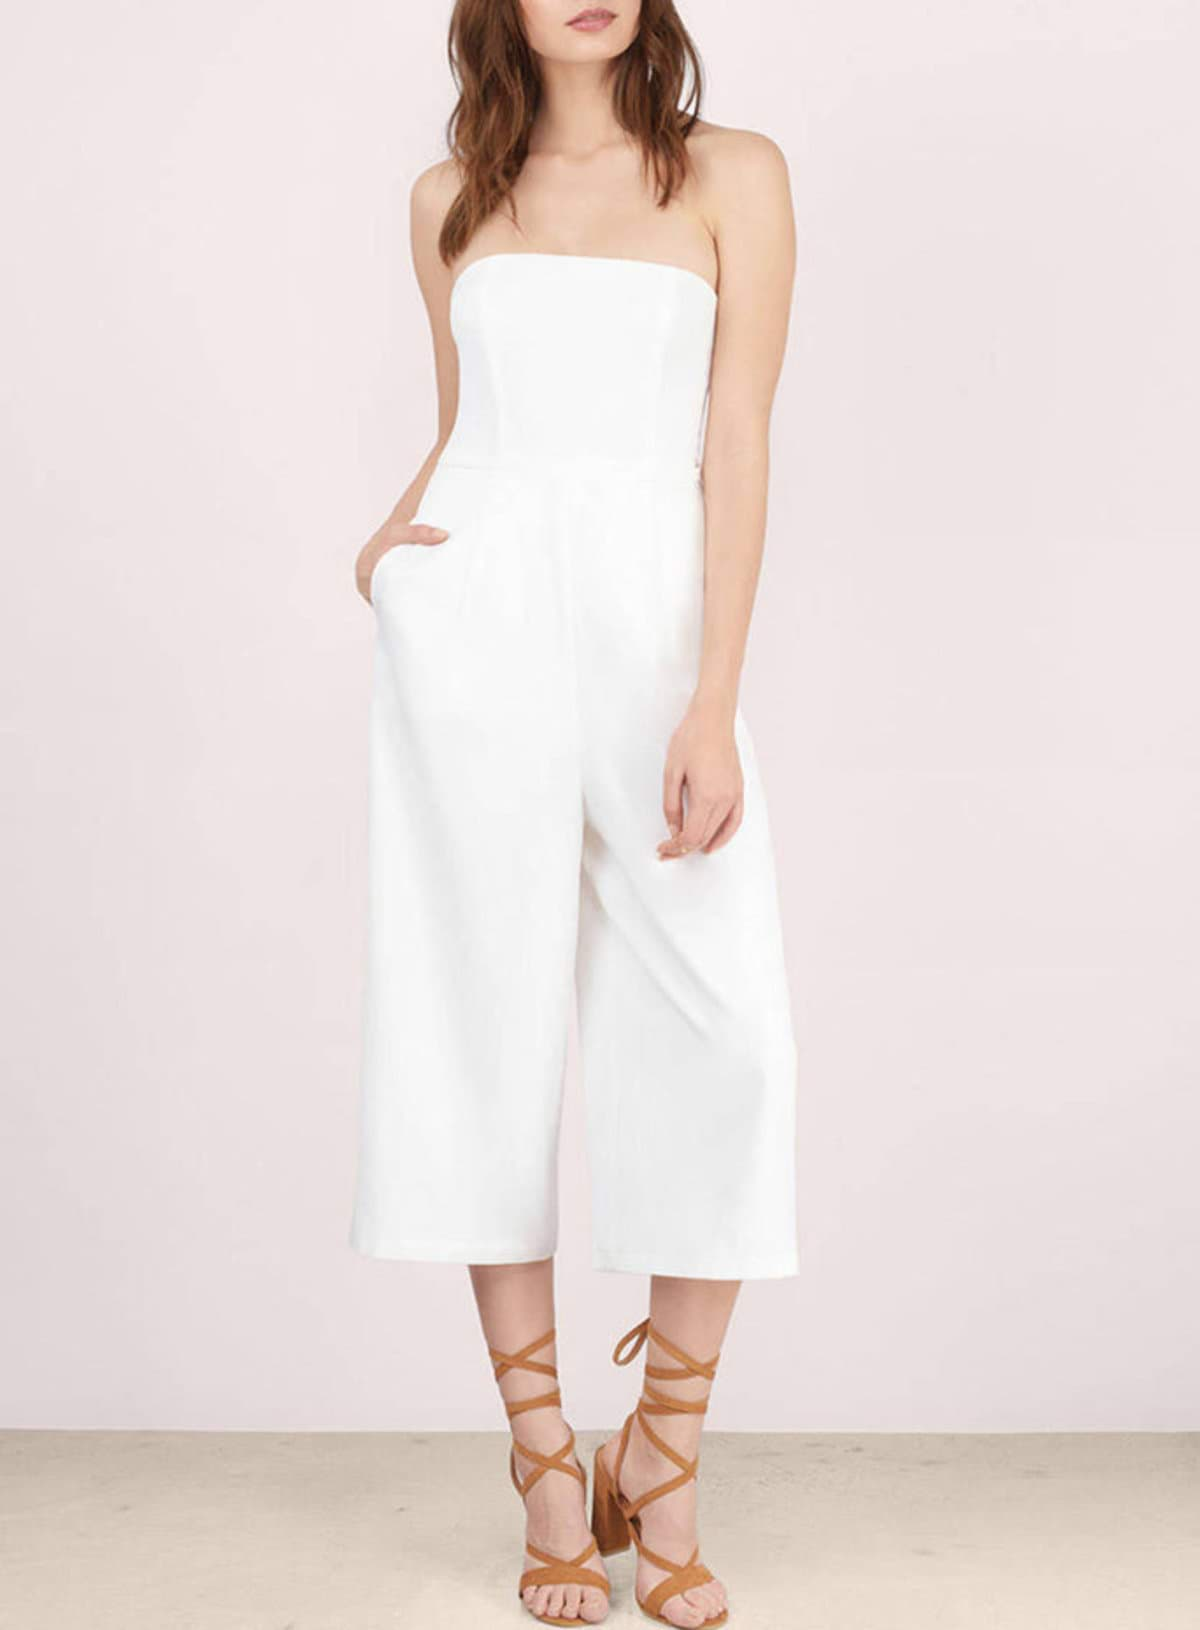 121516-jumpsuits-for-women-4